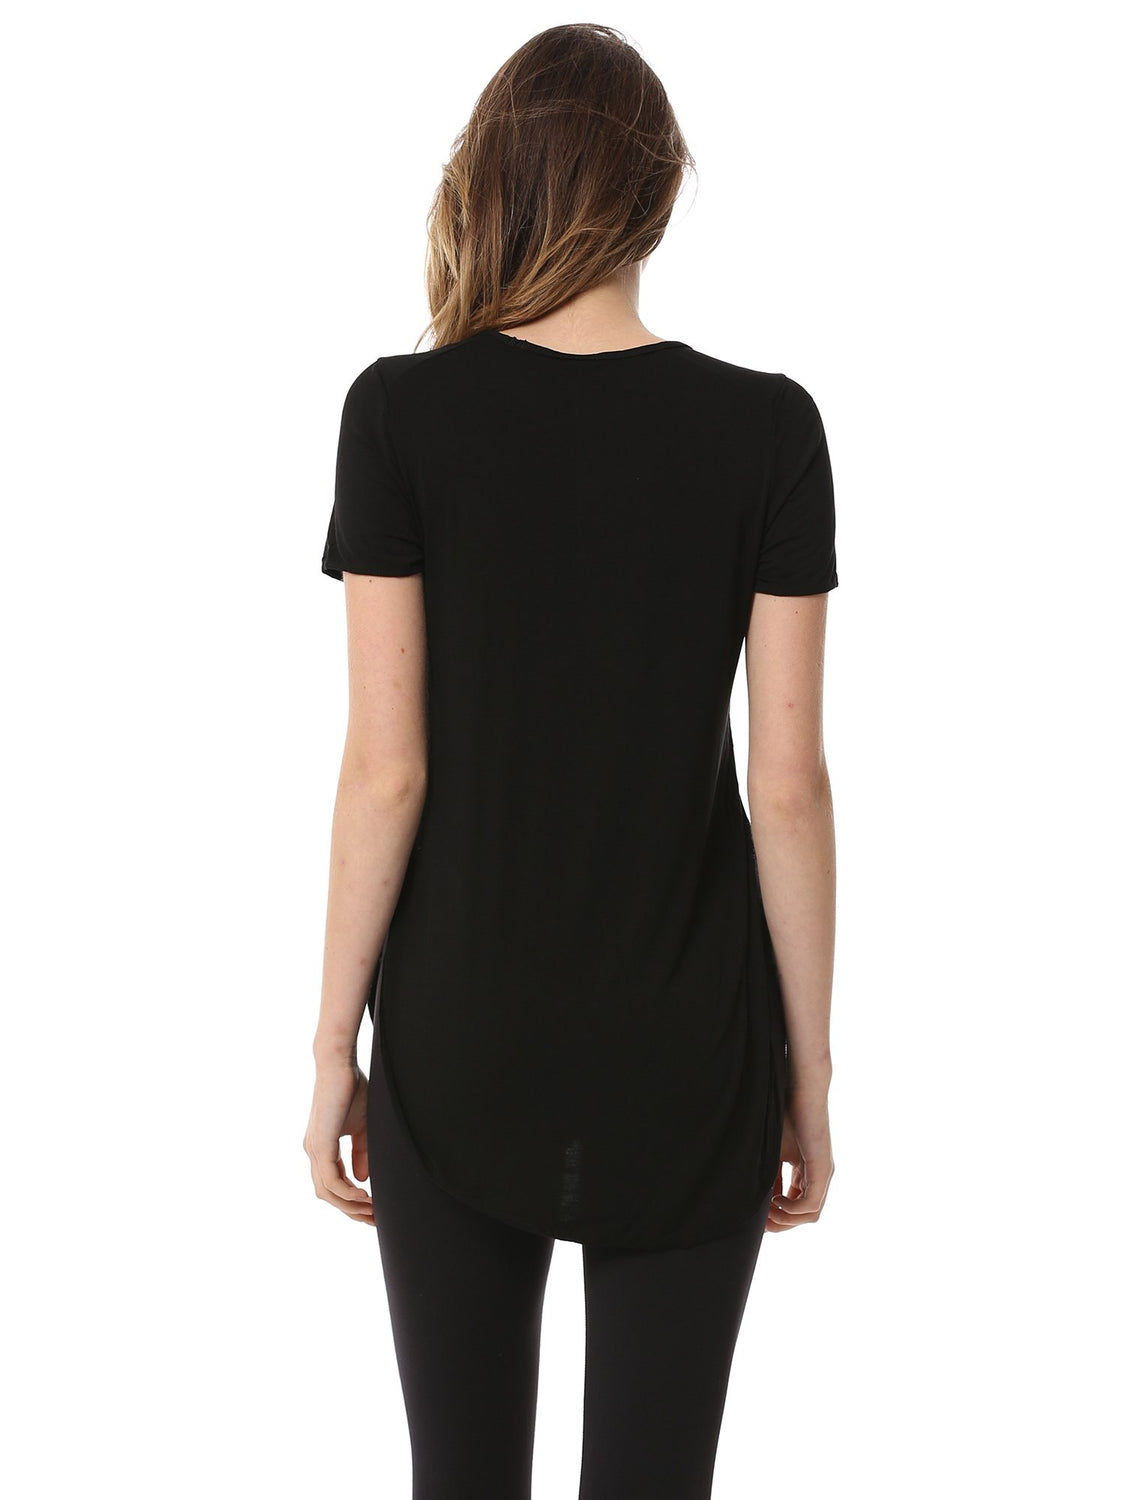 HI LO SPLIT SIDE TEE, BLACK